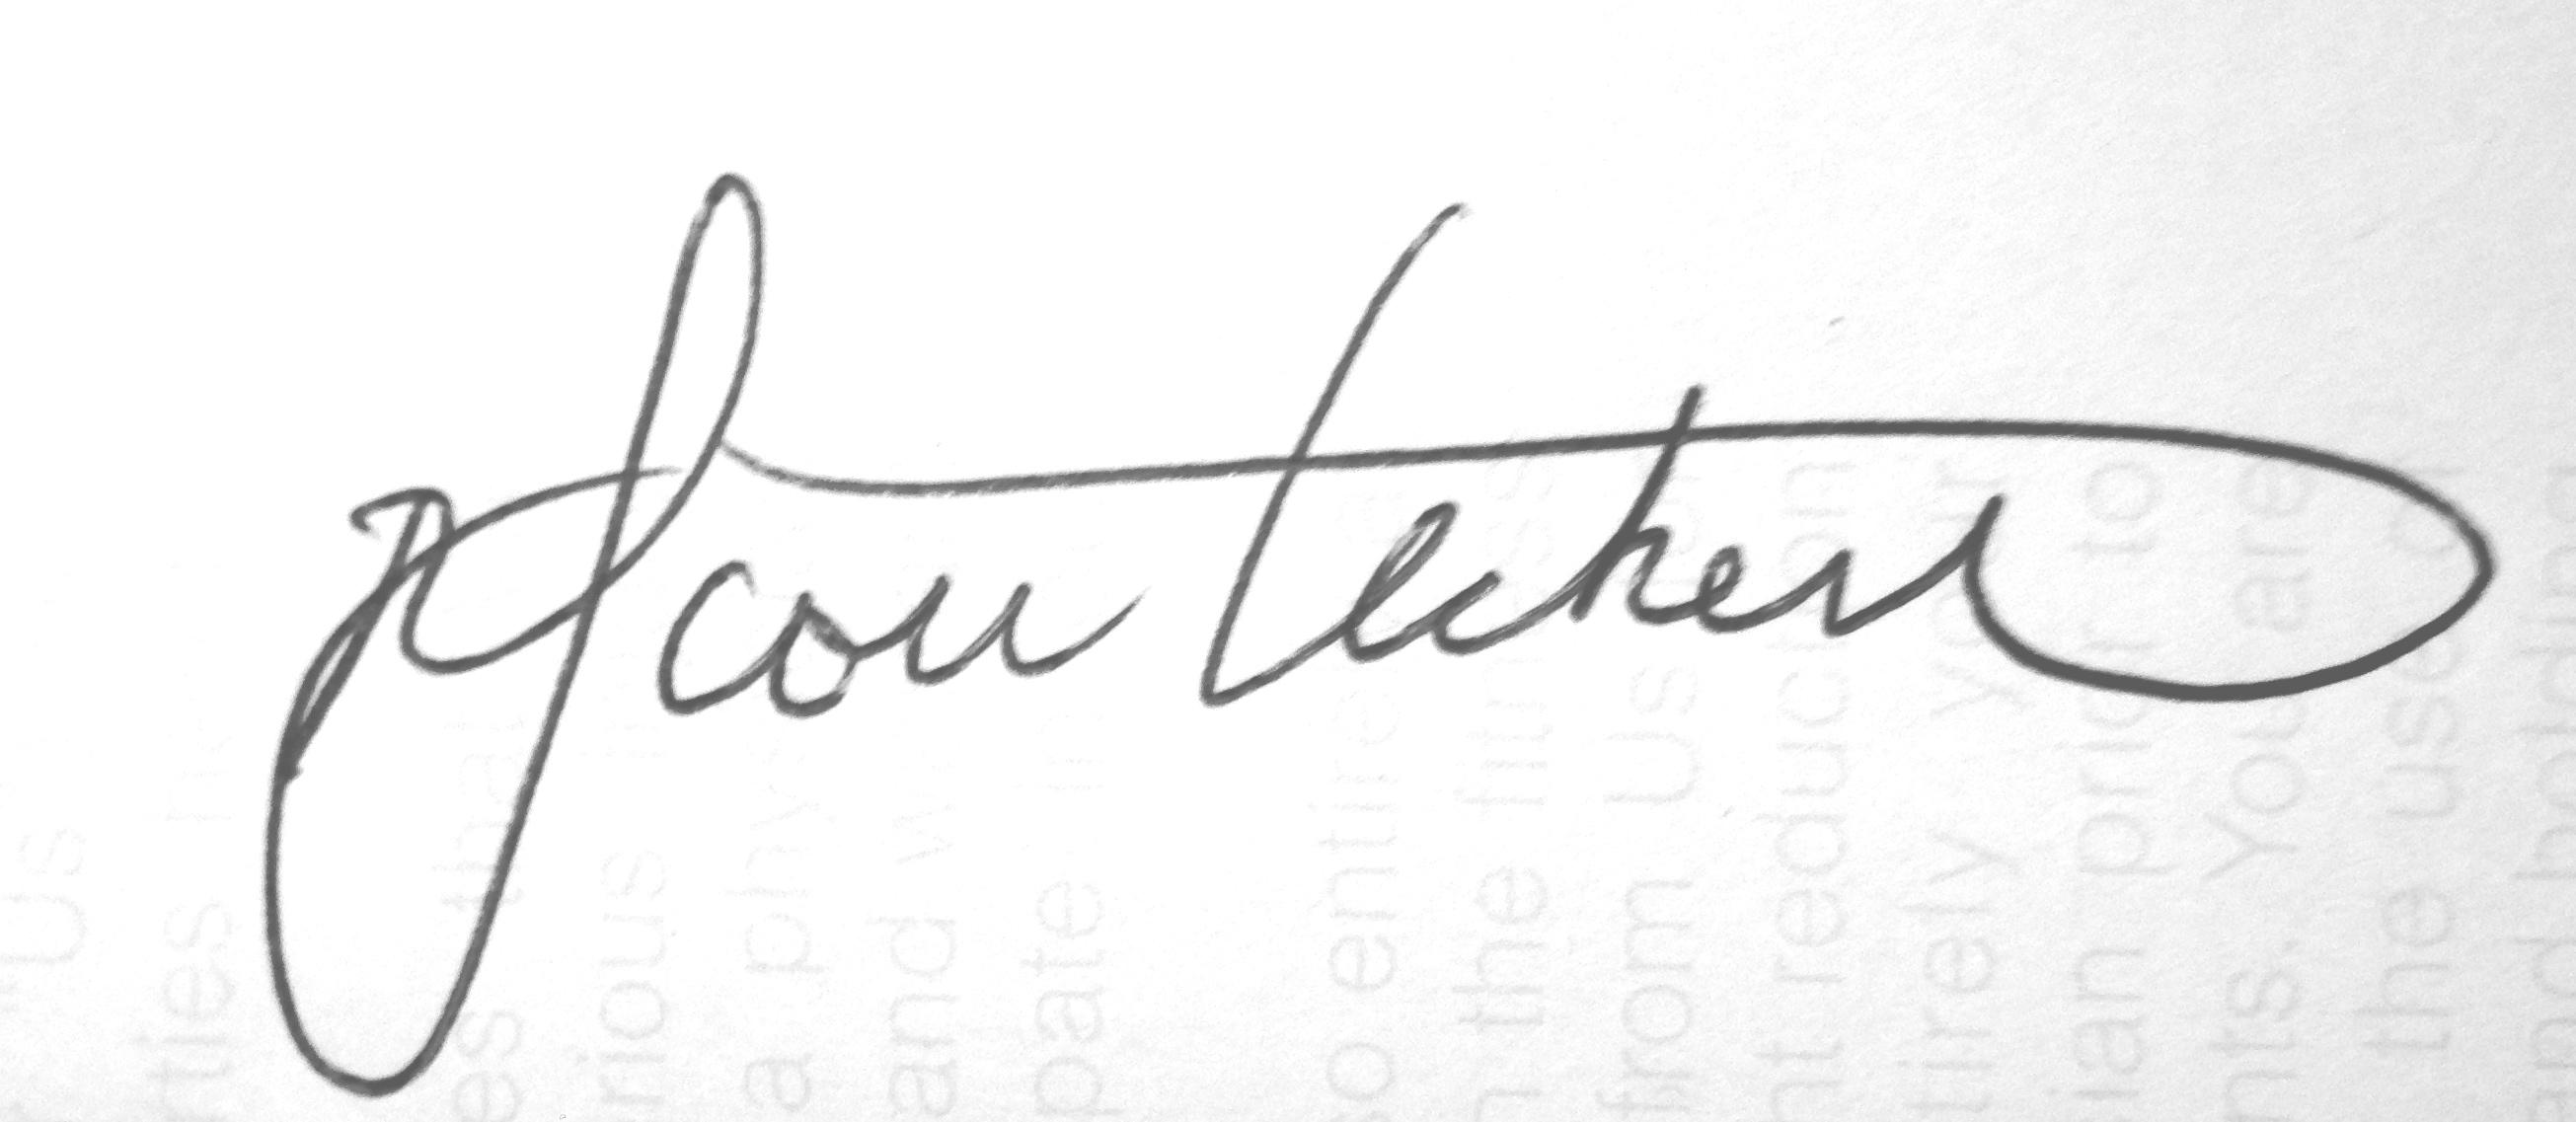 Scott Heckert's Signature